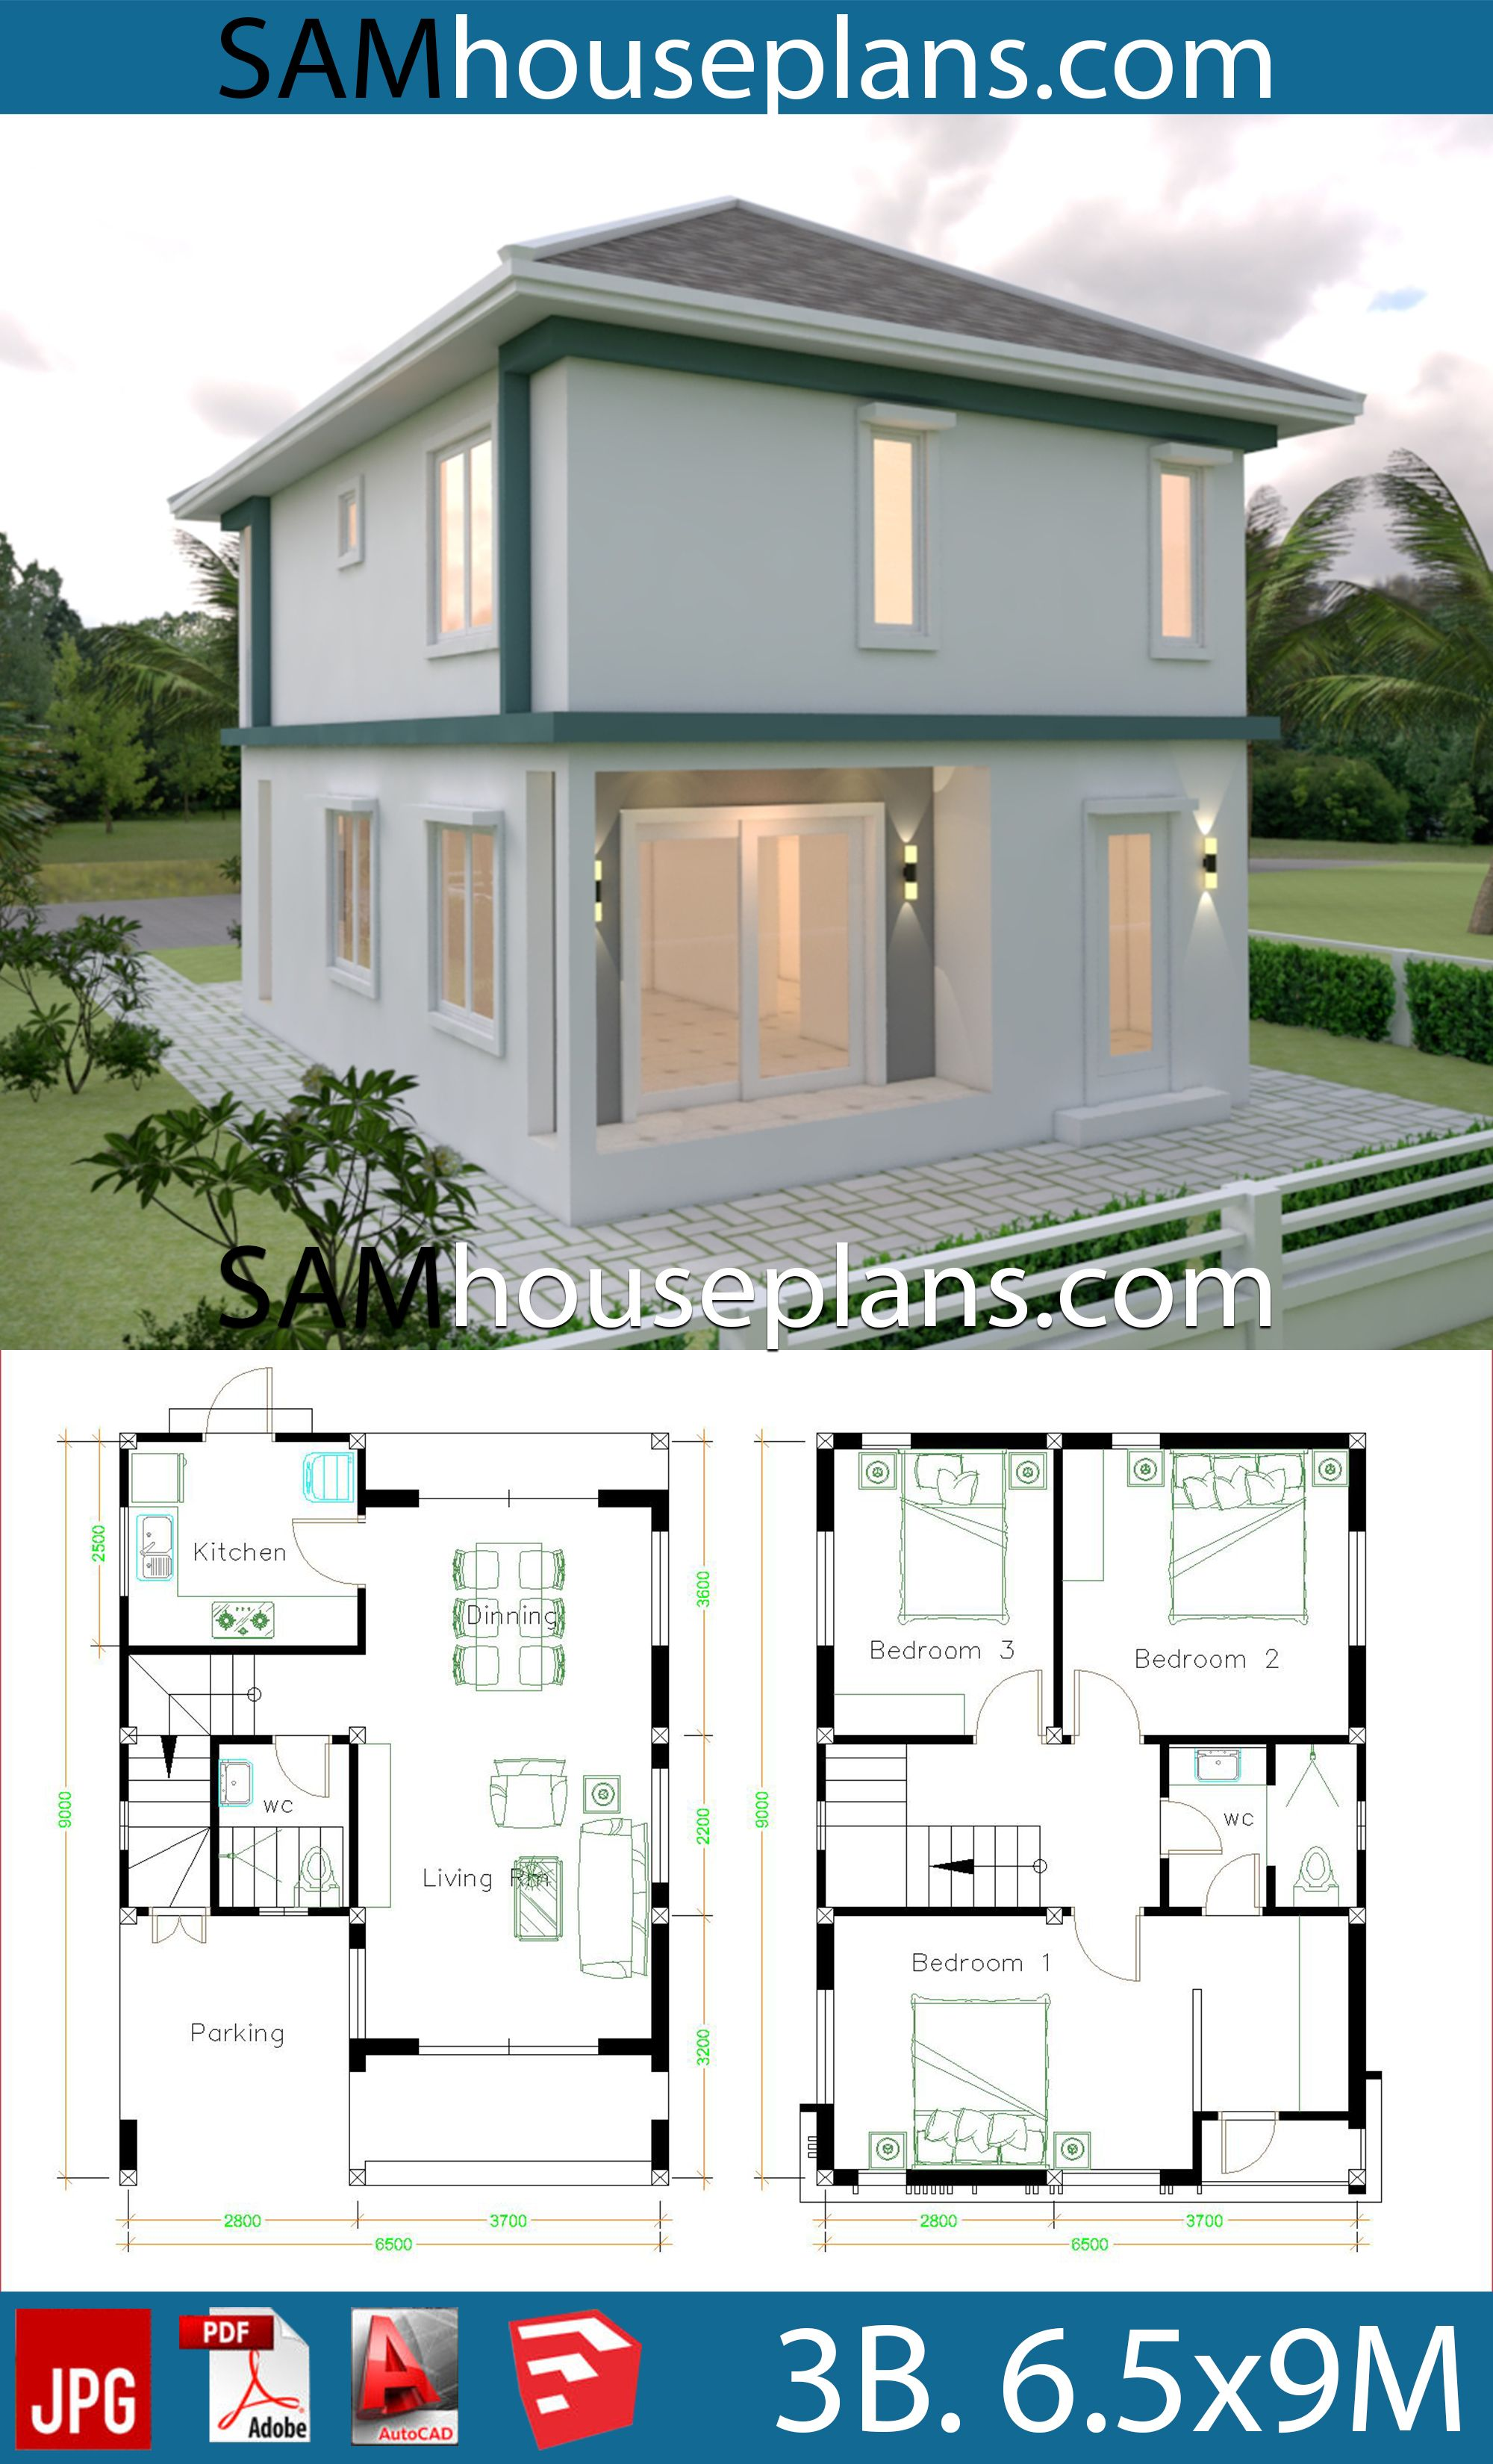 House Plans 6 5x9 With 3 Bedrooms House Plans Free Downloads House Plans Bungalow House Design Bedroom House Plans